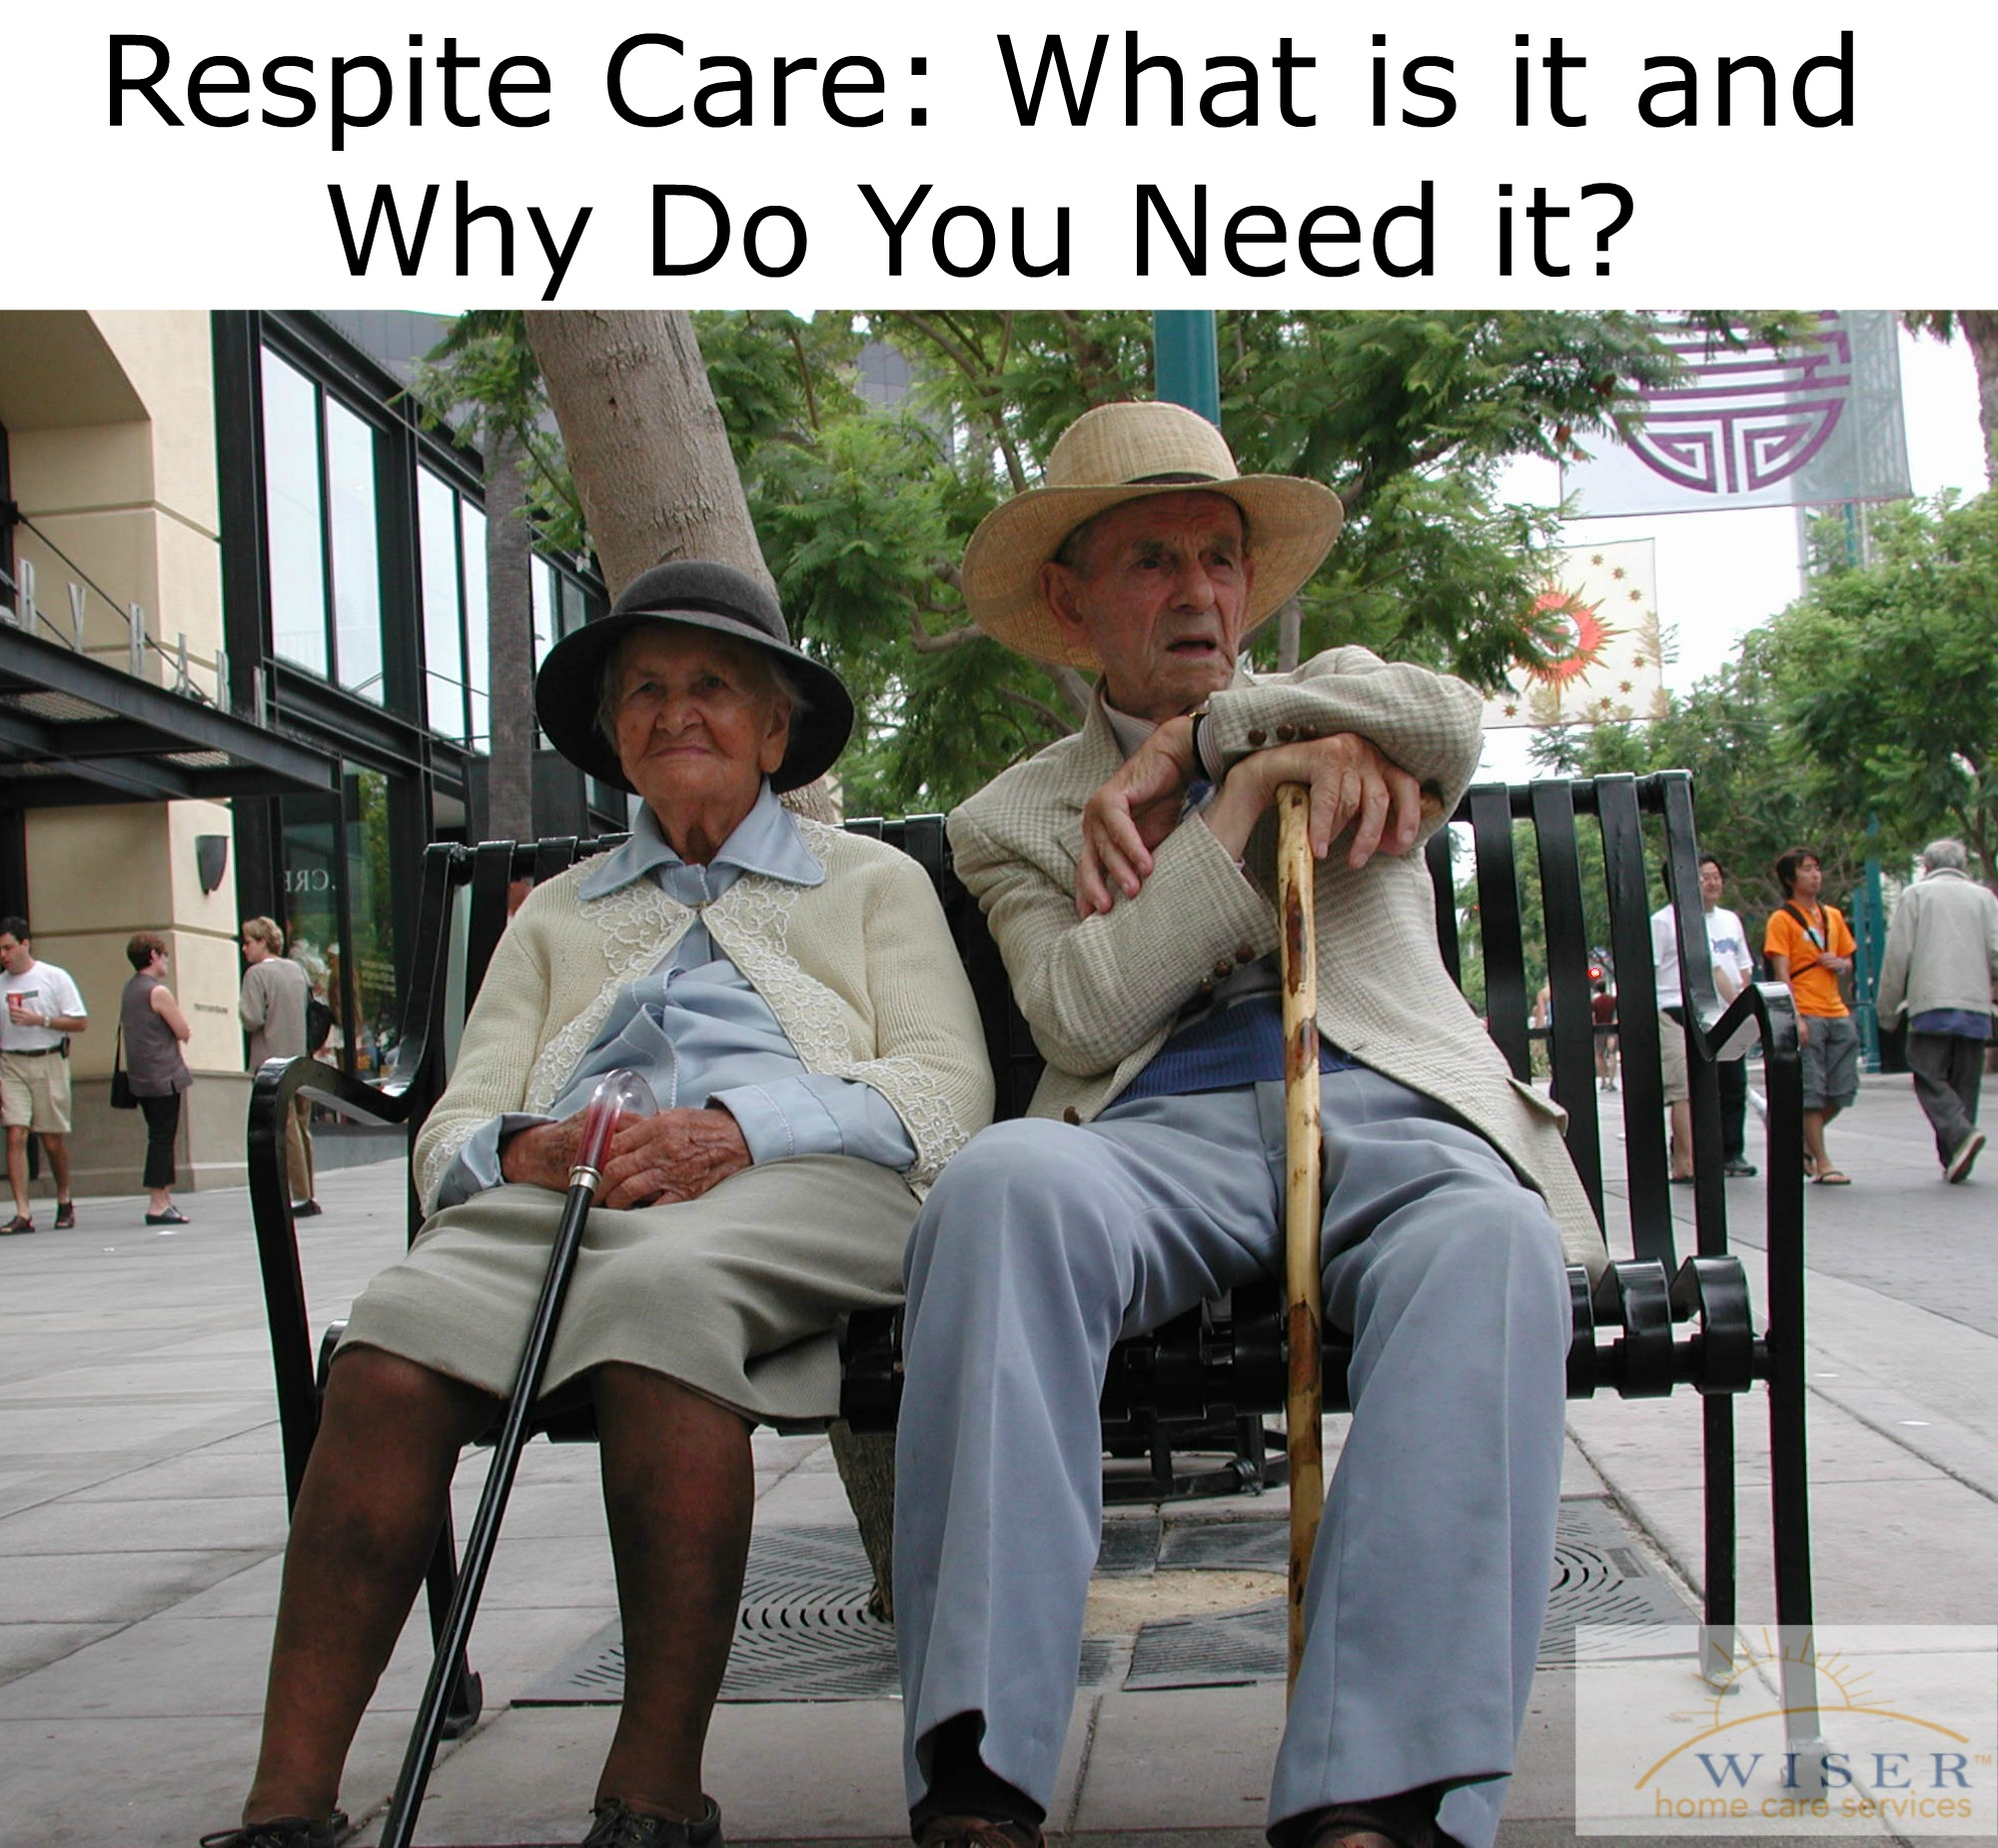 Nearly 44 million americans care for an elderly loved one. To be effective, one must also care for themselves. Respite care helps.